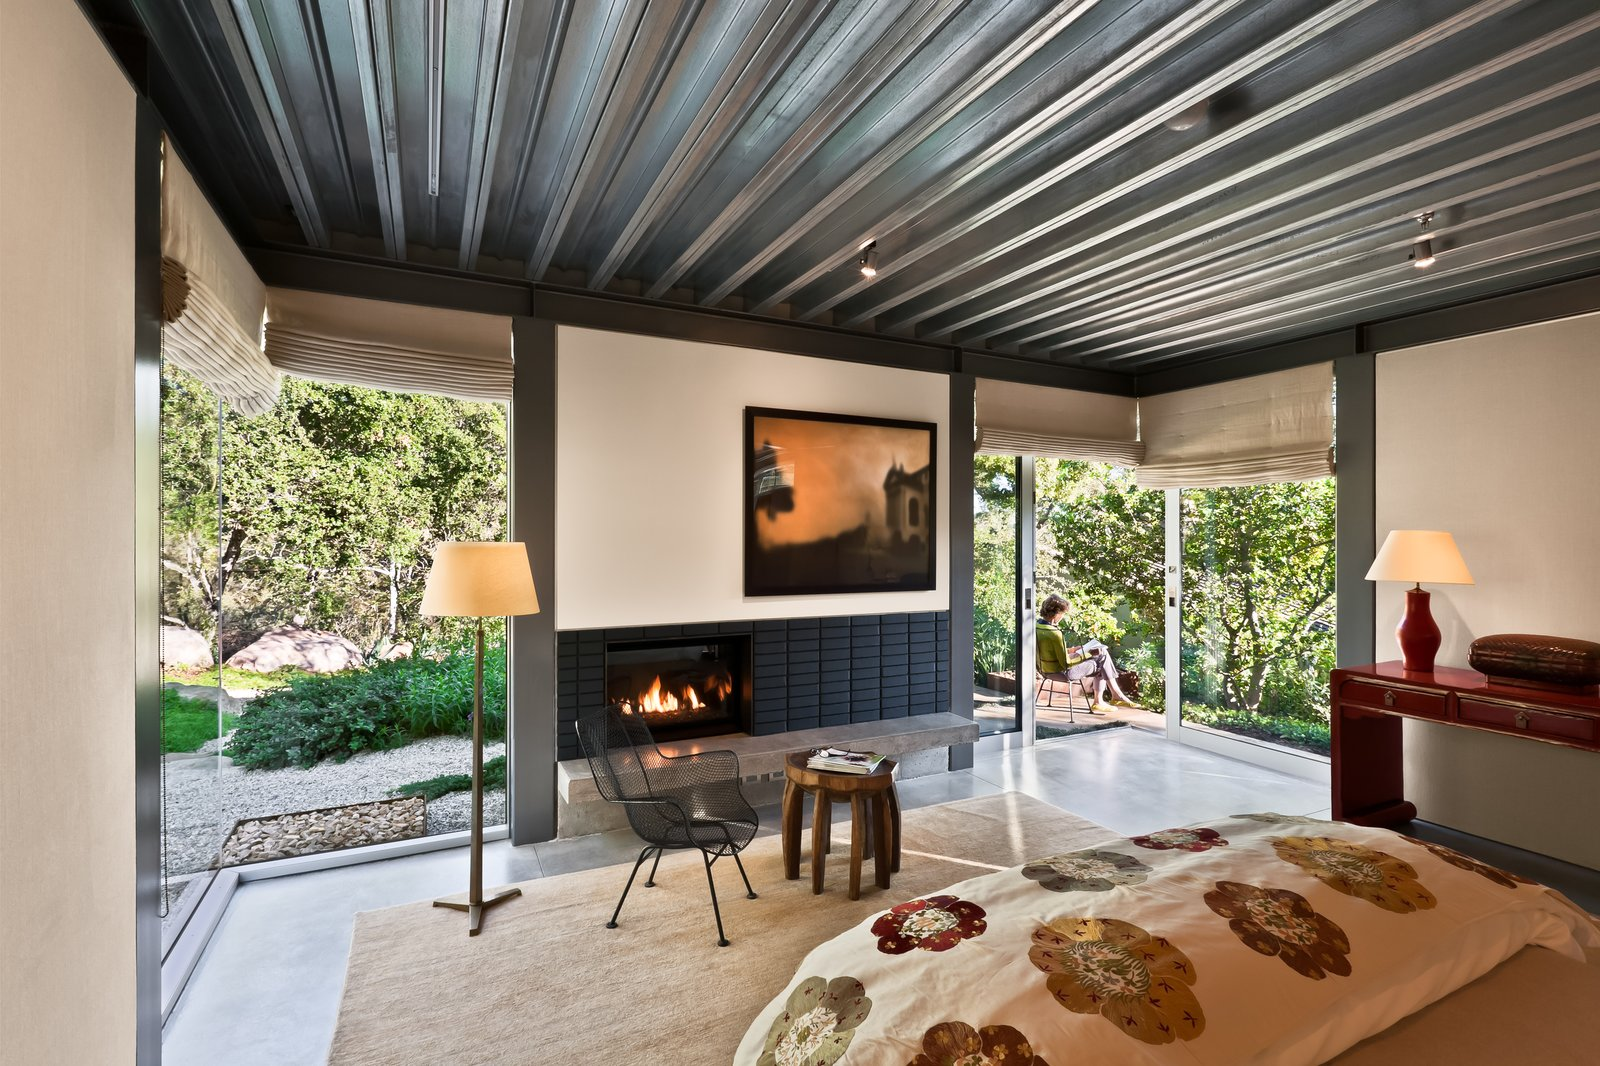 Bedroom, Bed, Concrete Floor, Chair, Floor Lighting, Dresser, Rug Floor, Ceiling Lighting, and Accent Lighting The second wing features both bedrooms each with clerestory windows to capture the natural light in sunny Montecito and frame the magnificent views.   Iconic Modernism by Barton Myers